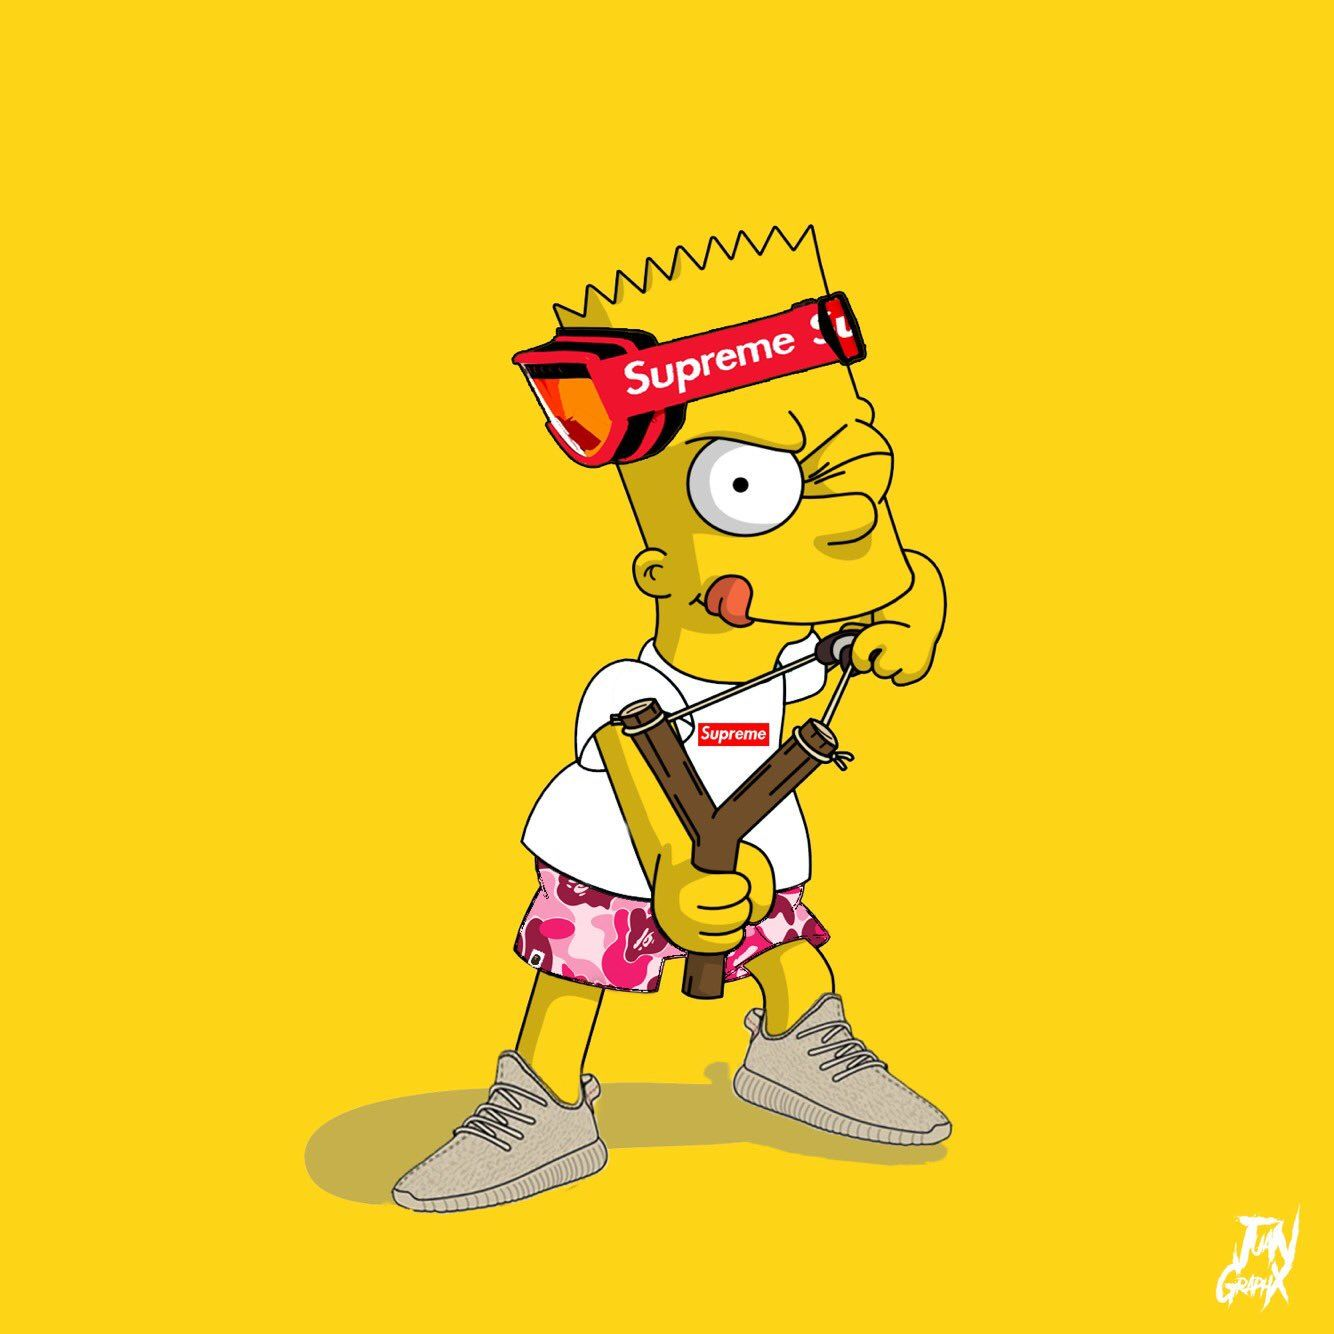 Hypebeast Bart Simpson Wallpapers   Top Hypebeast Bart 1334x1334